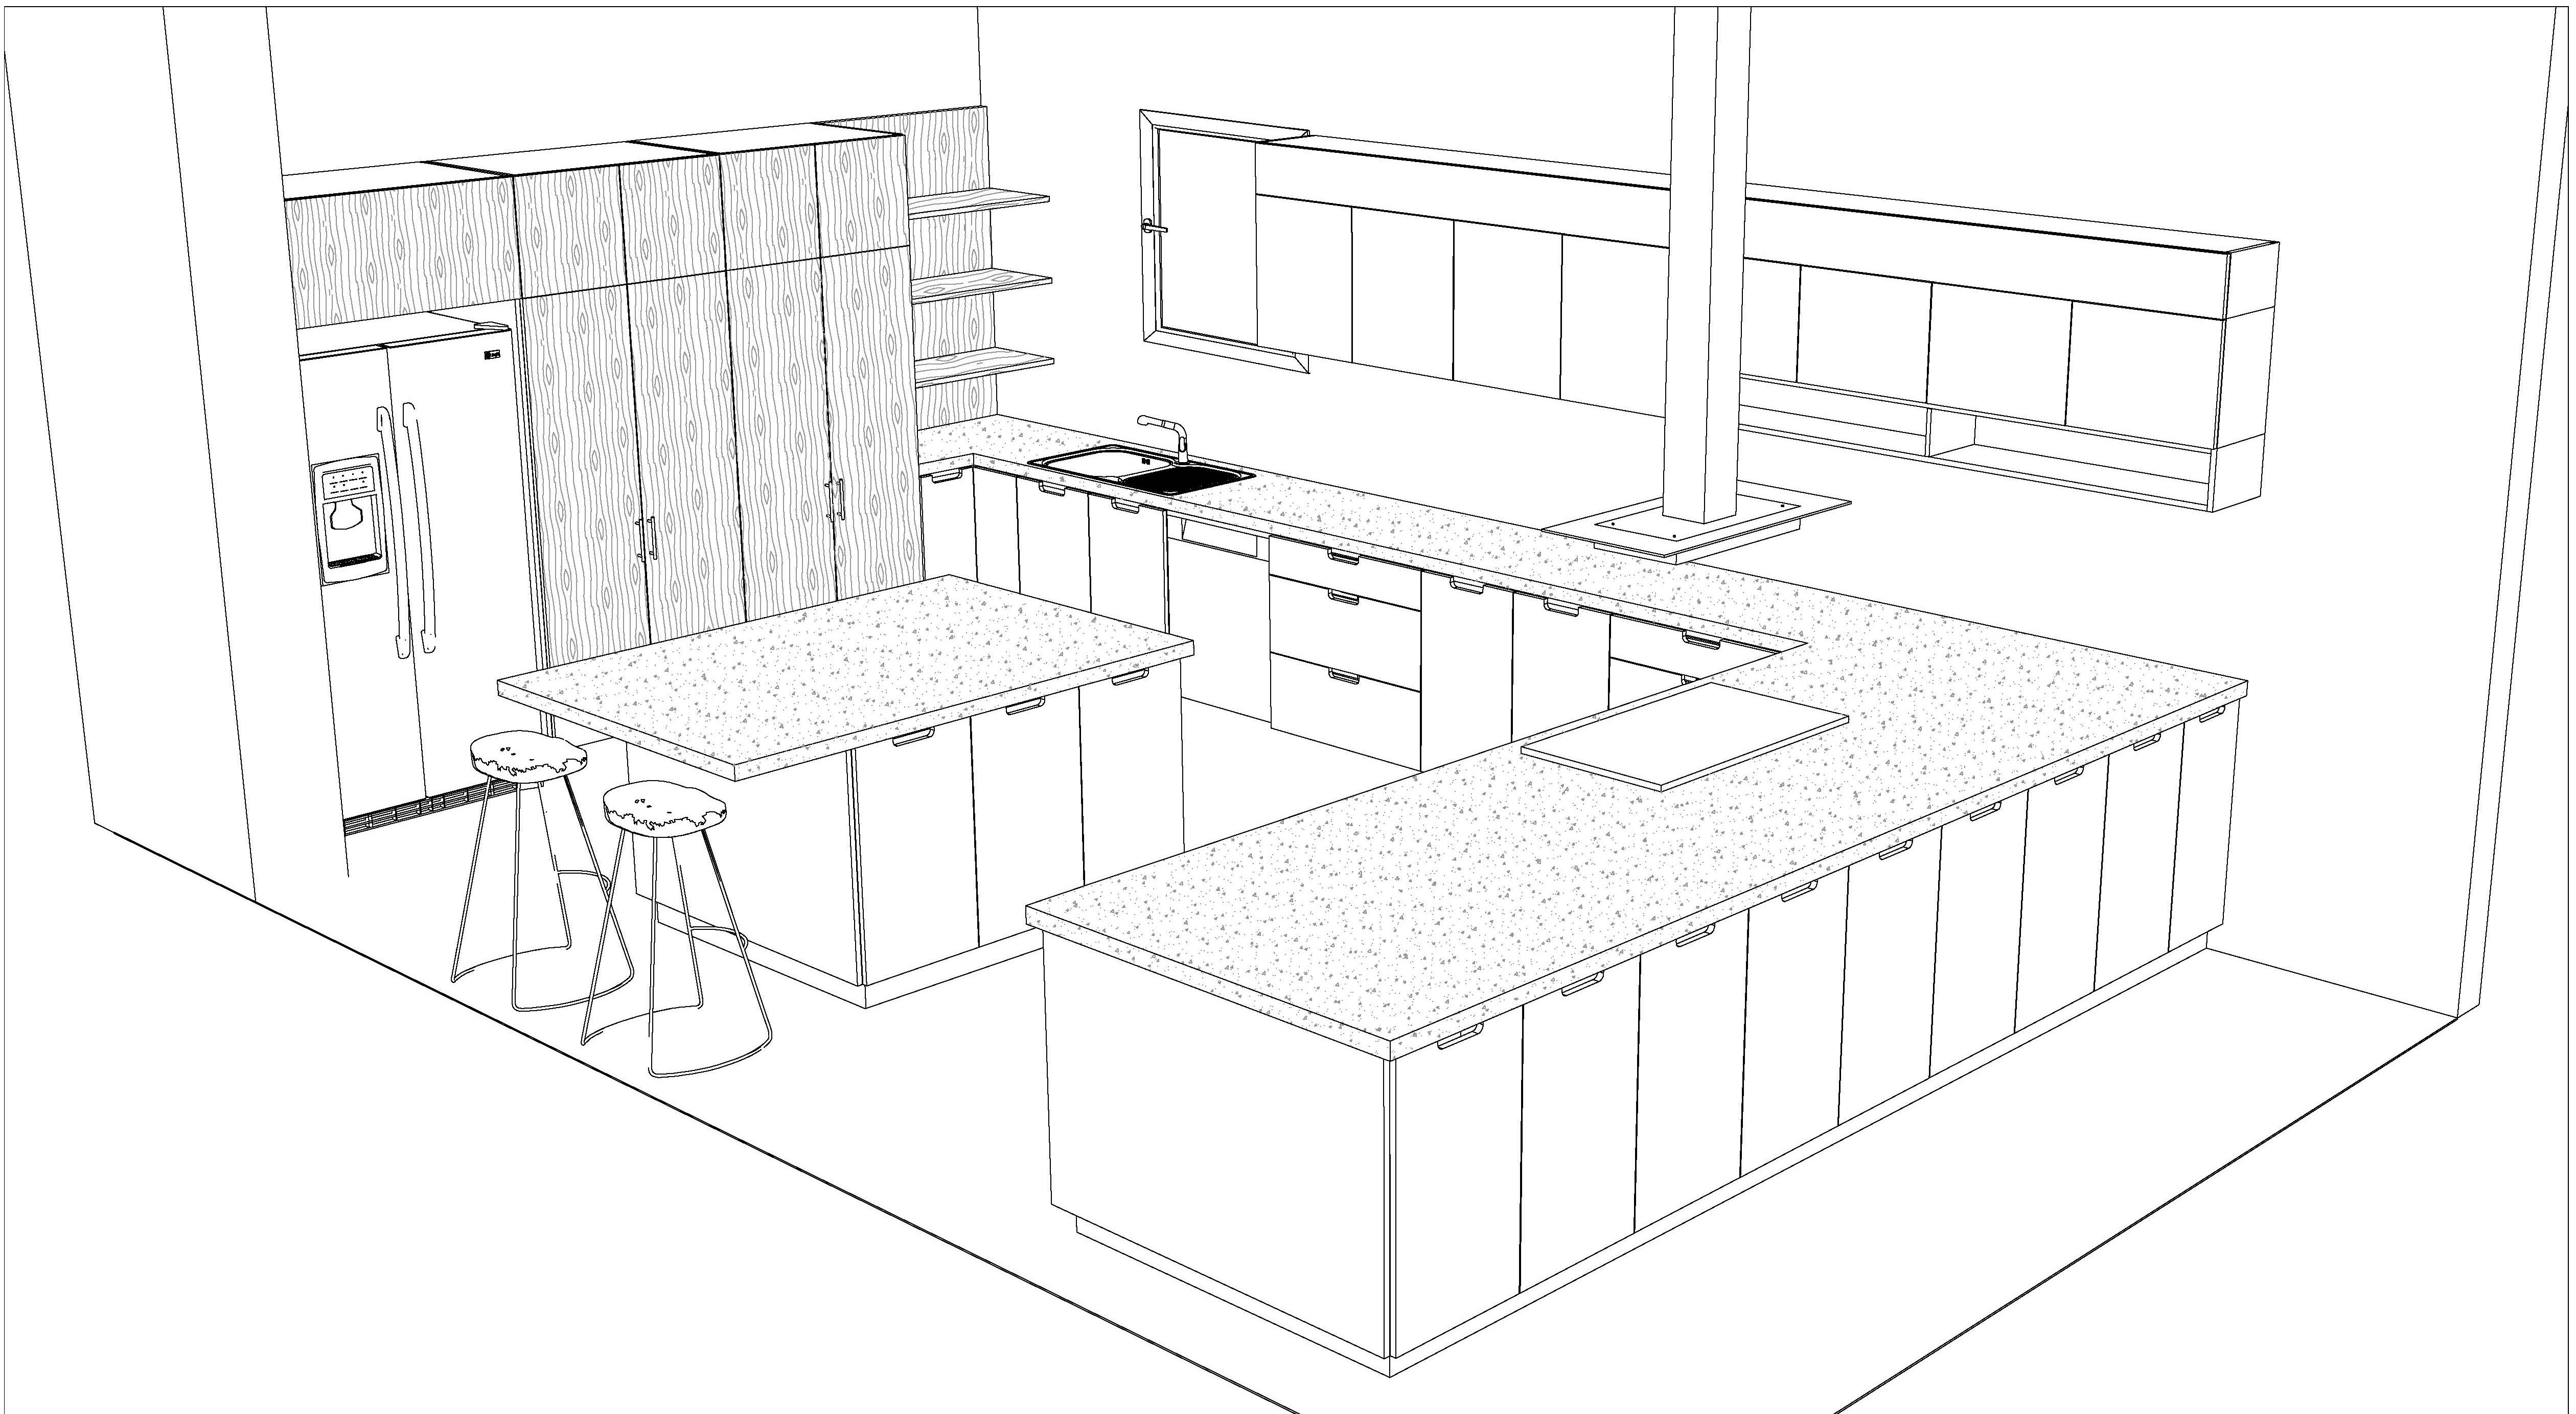 draw your kitchen sketches in autocad 2d 3d by ehabmagdy Autodesk 3D Designs